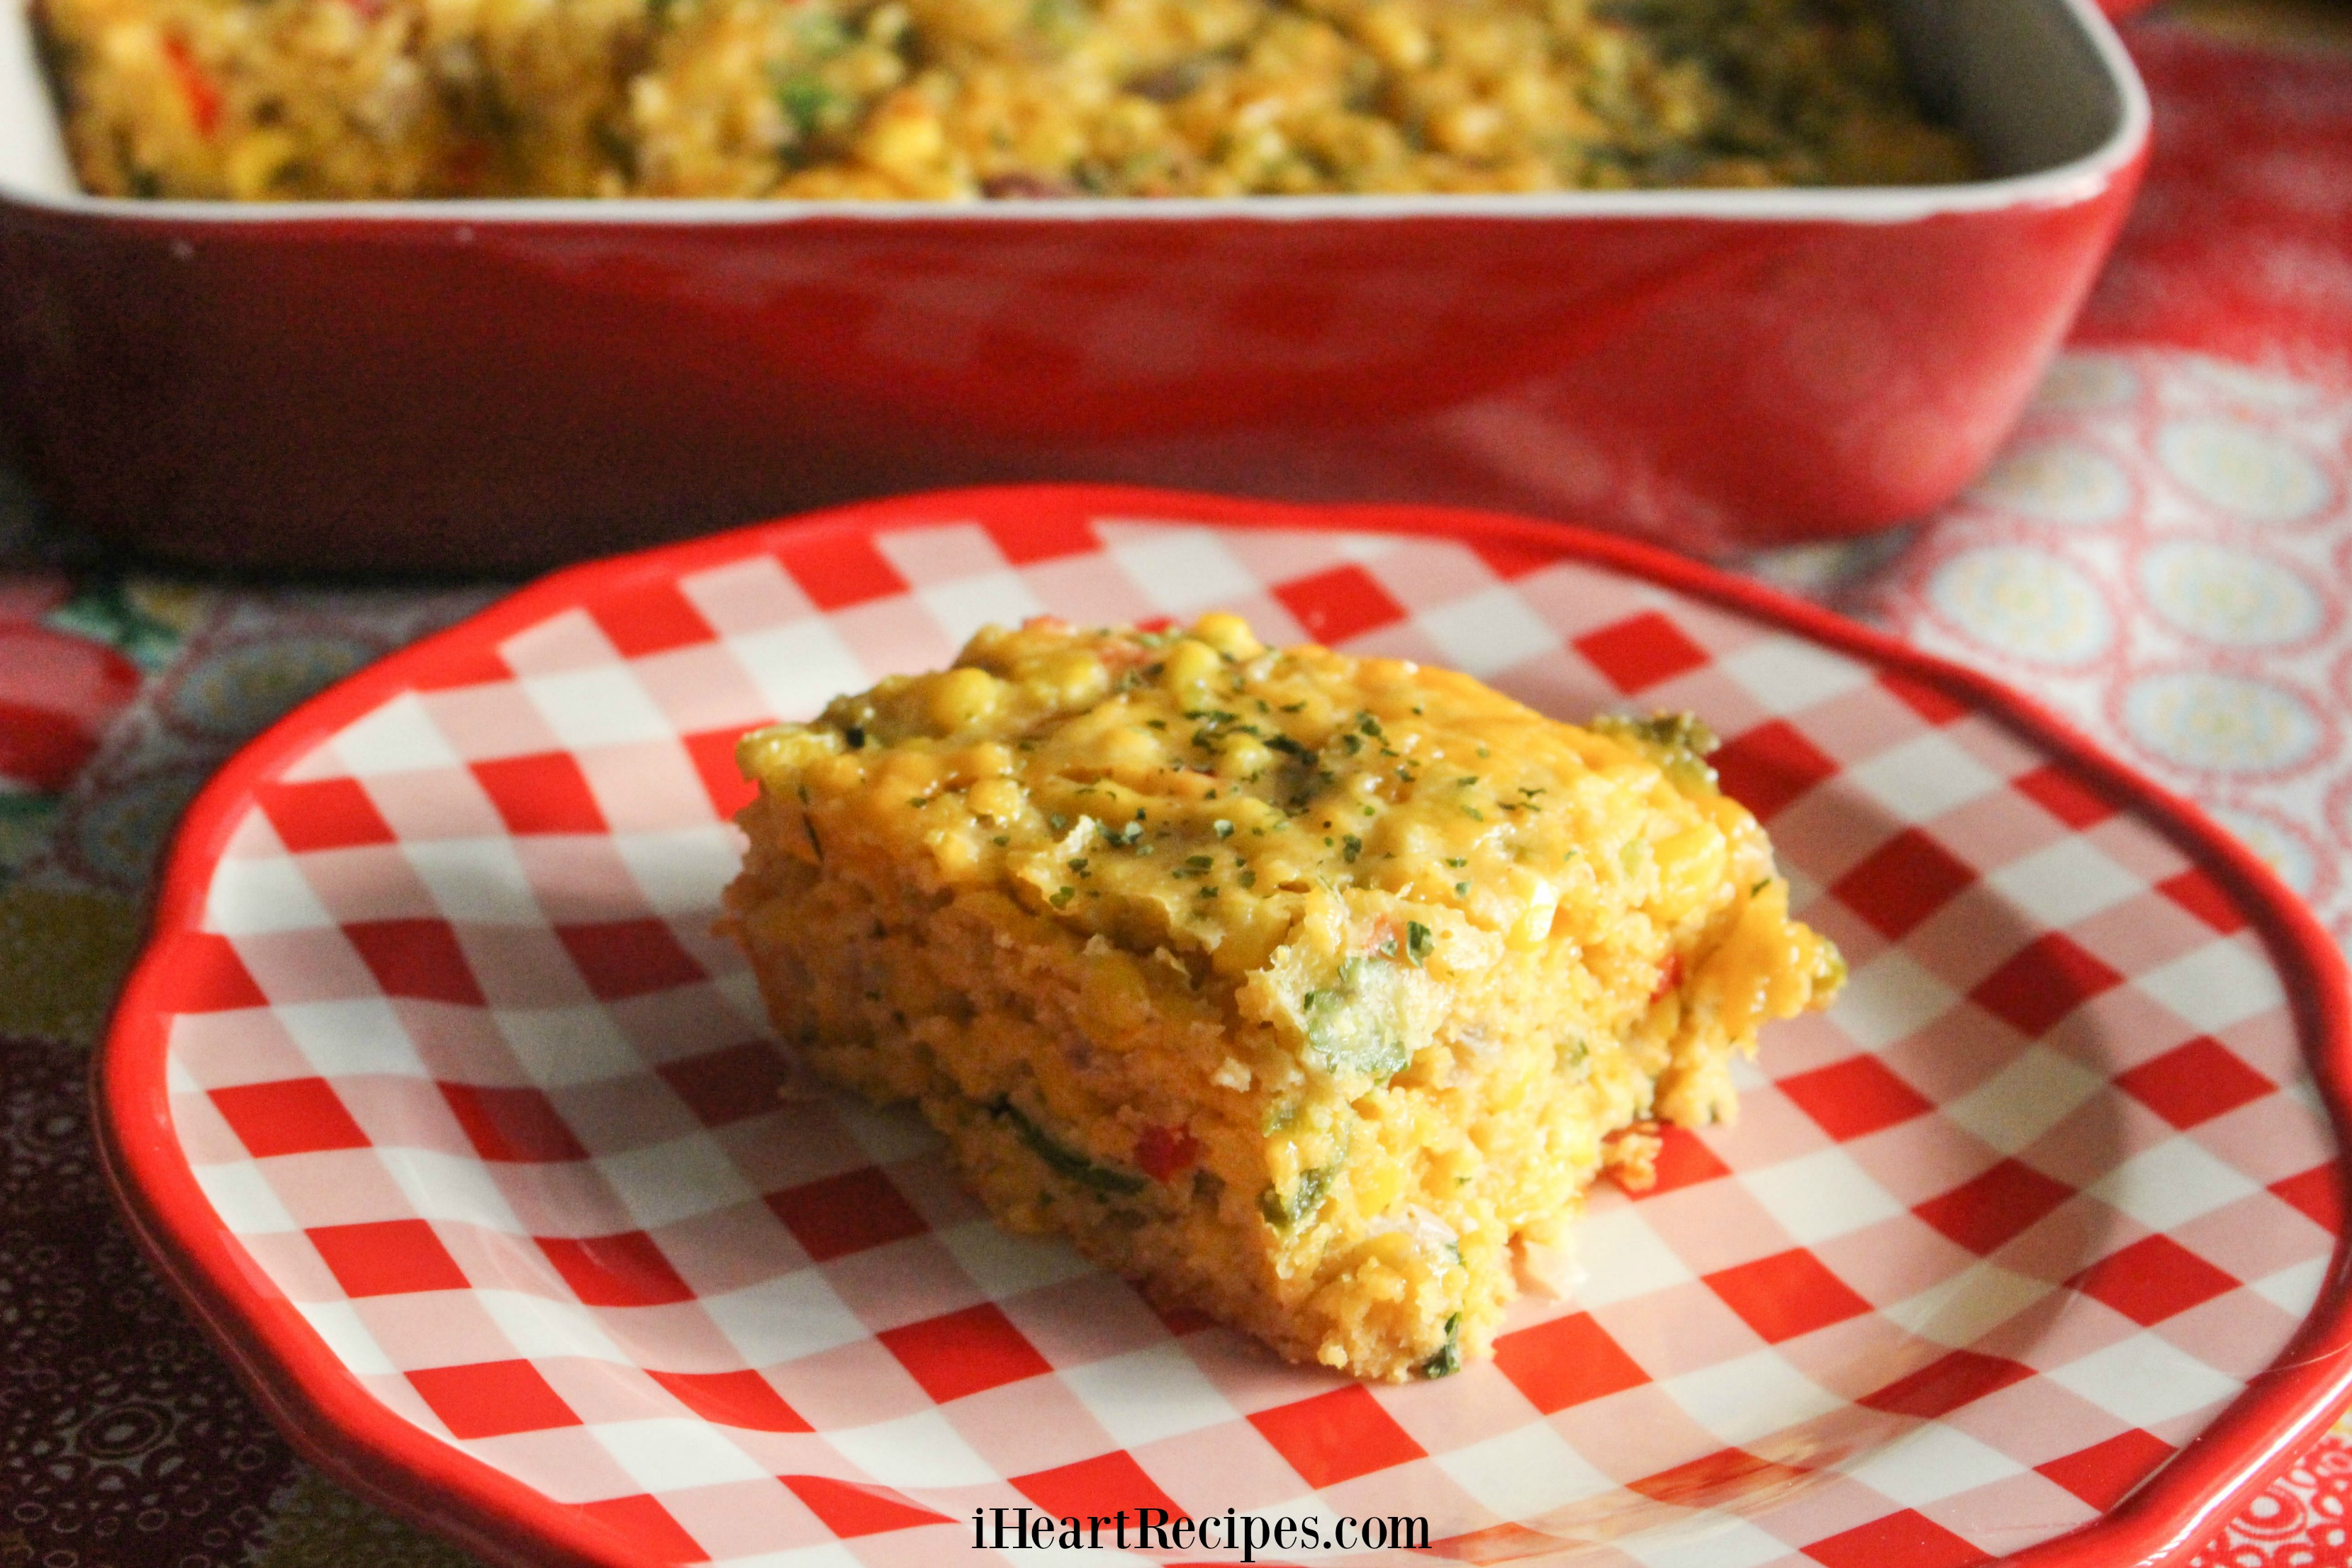 This sweet and savory corn casserole is a real family favoite